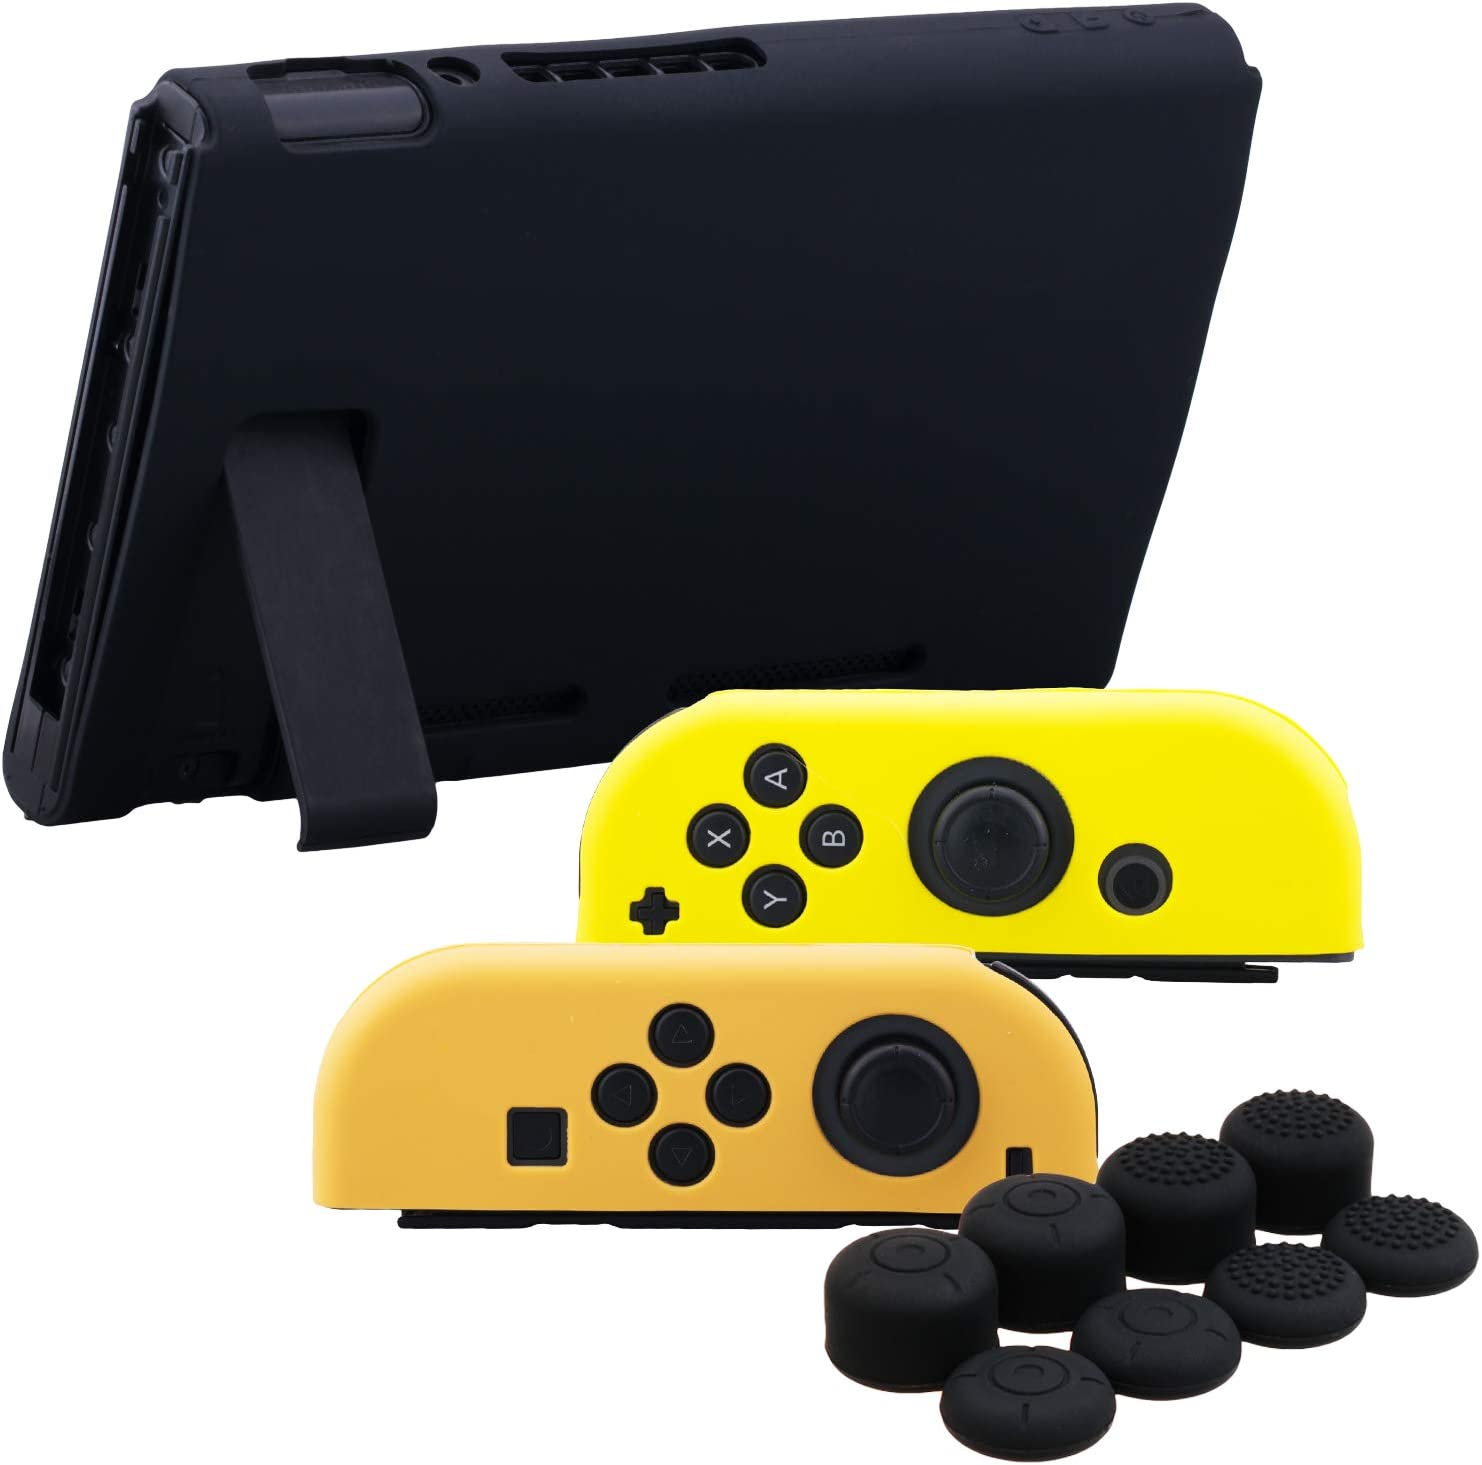 YoRHa Hand Grip Silicone Cover Skin Case for Switch/NS/NX Joy-Con Controller and Tablet (Orange Yellow Black) with Joy-Con Thumb Grips x 8